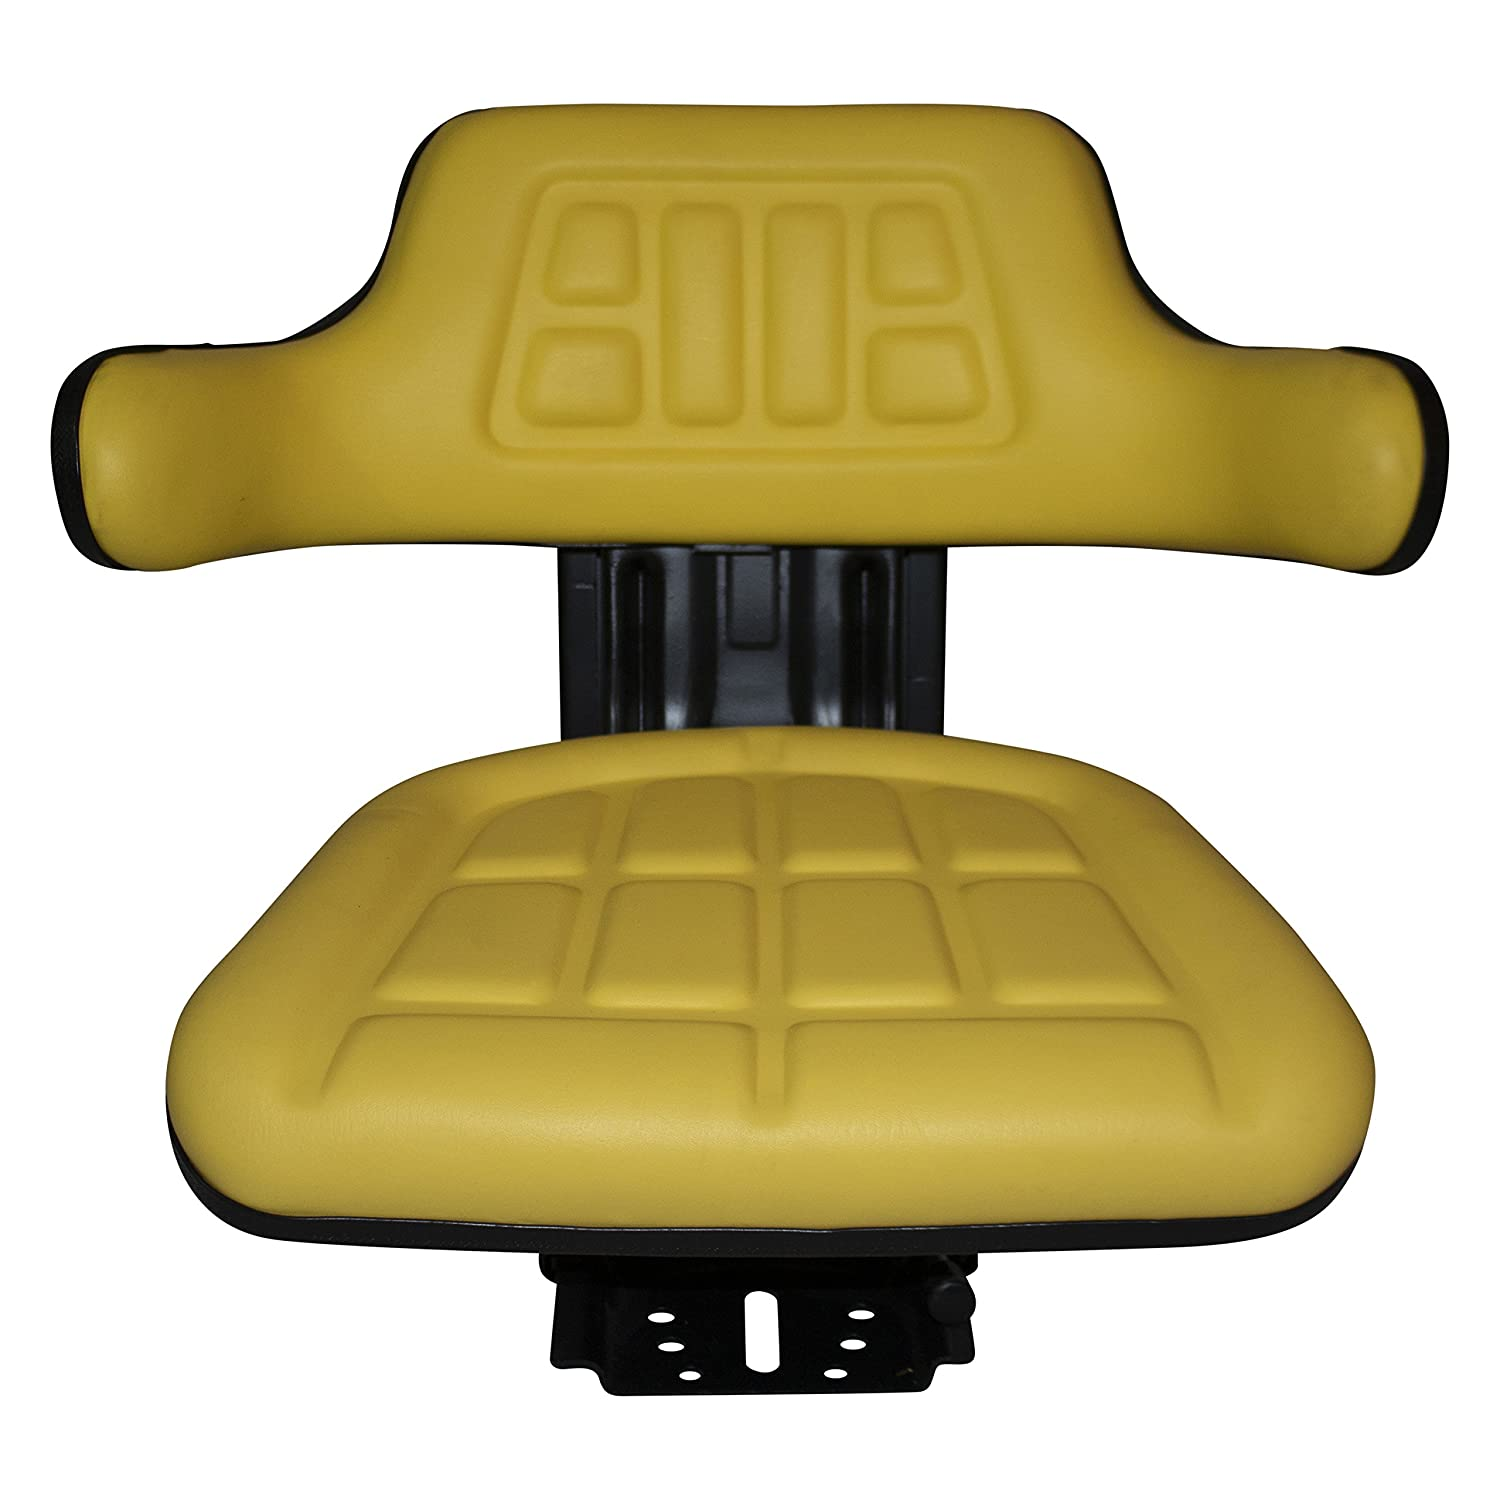 YELLOW JOHN DEERE 2750 2755 2840 2855 WAFFLE STYLE TRAC SEATS BRAND UNIVERSAL TRACTOR SUSPENSION SEAT (FAST SHIP - DELIVERS IN 1-4 BUSINESS DAYS) Stateline Distribution Inc. JDY2750WAF